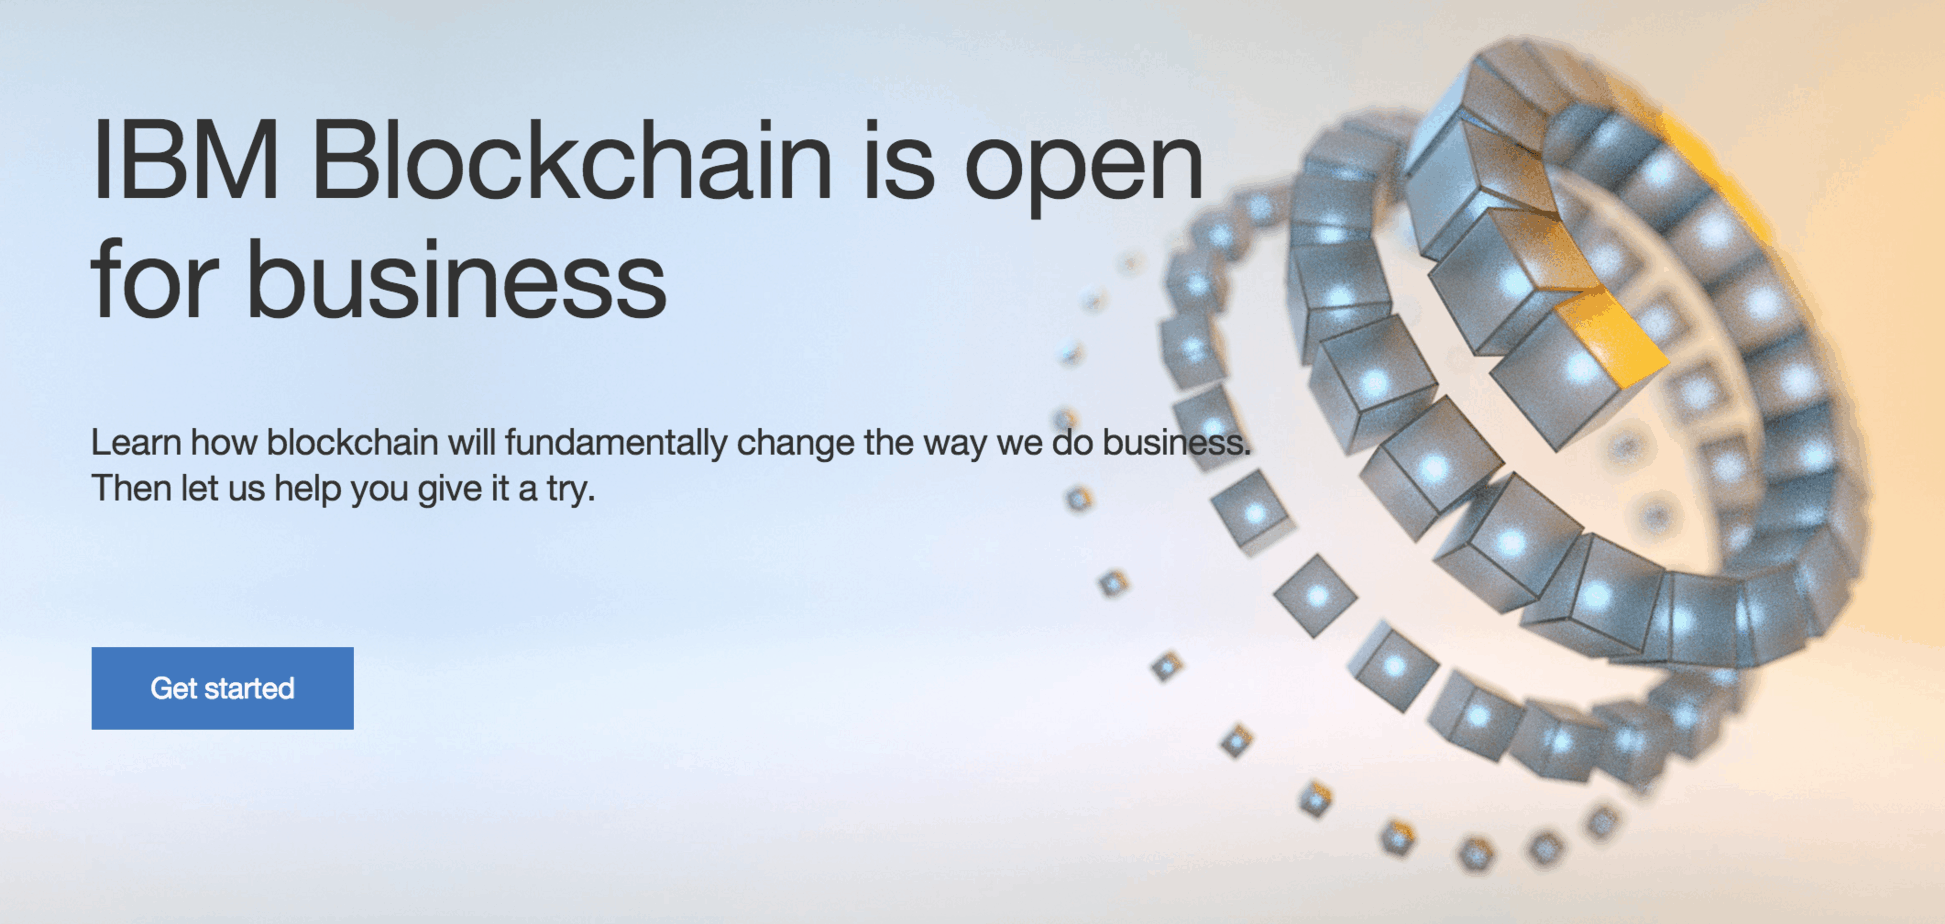 IBM Completes PoC Of Blockchain-based Shared KYC With Deutsche Bank